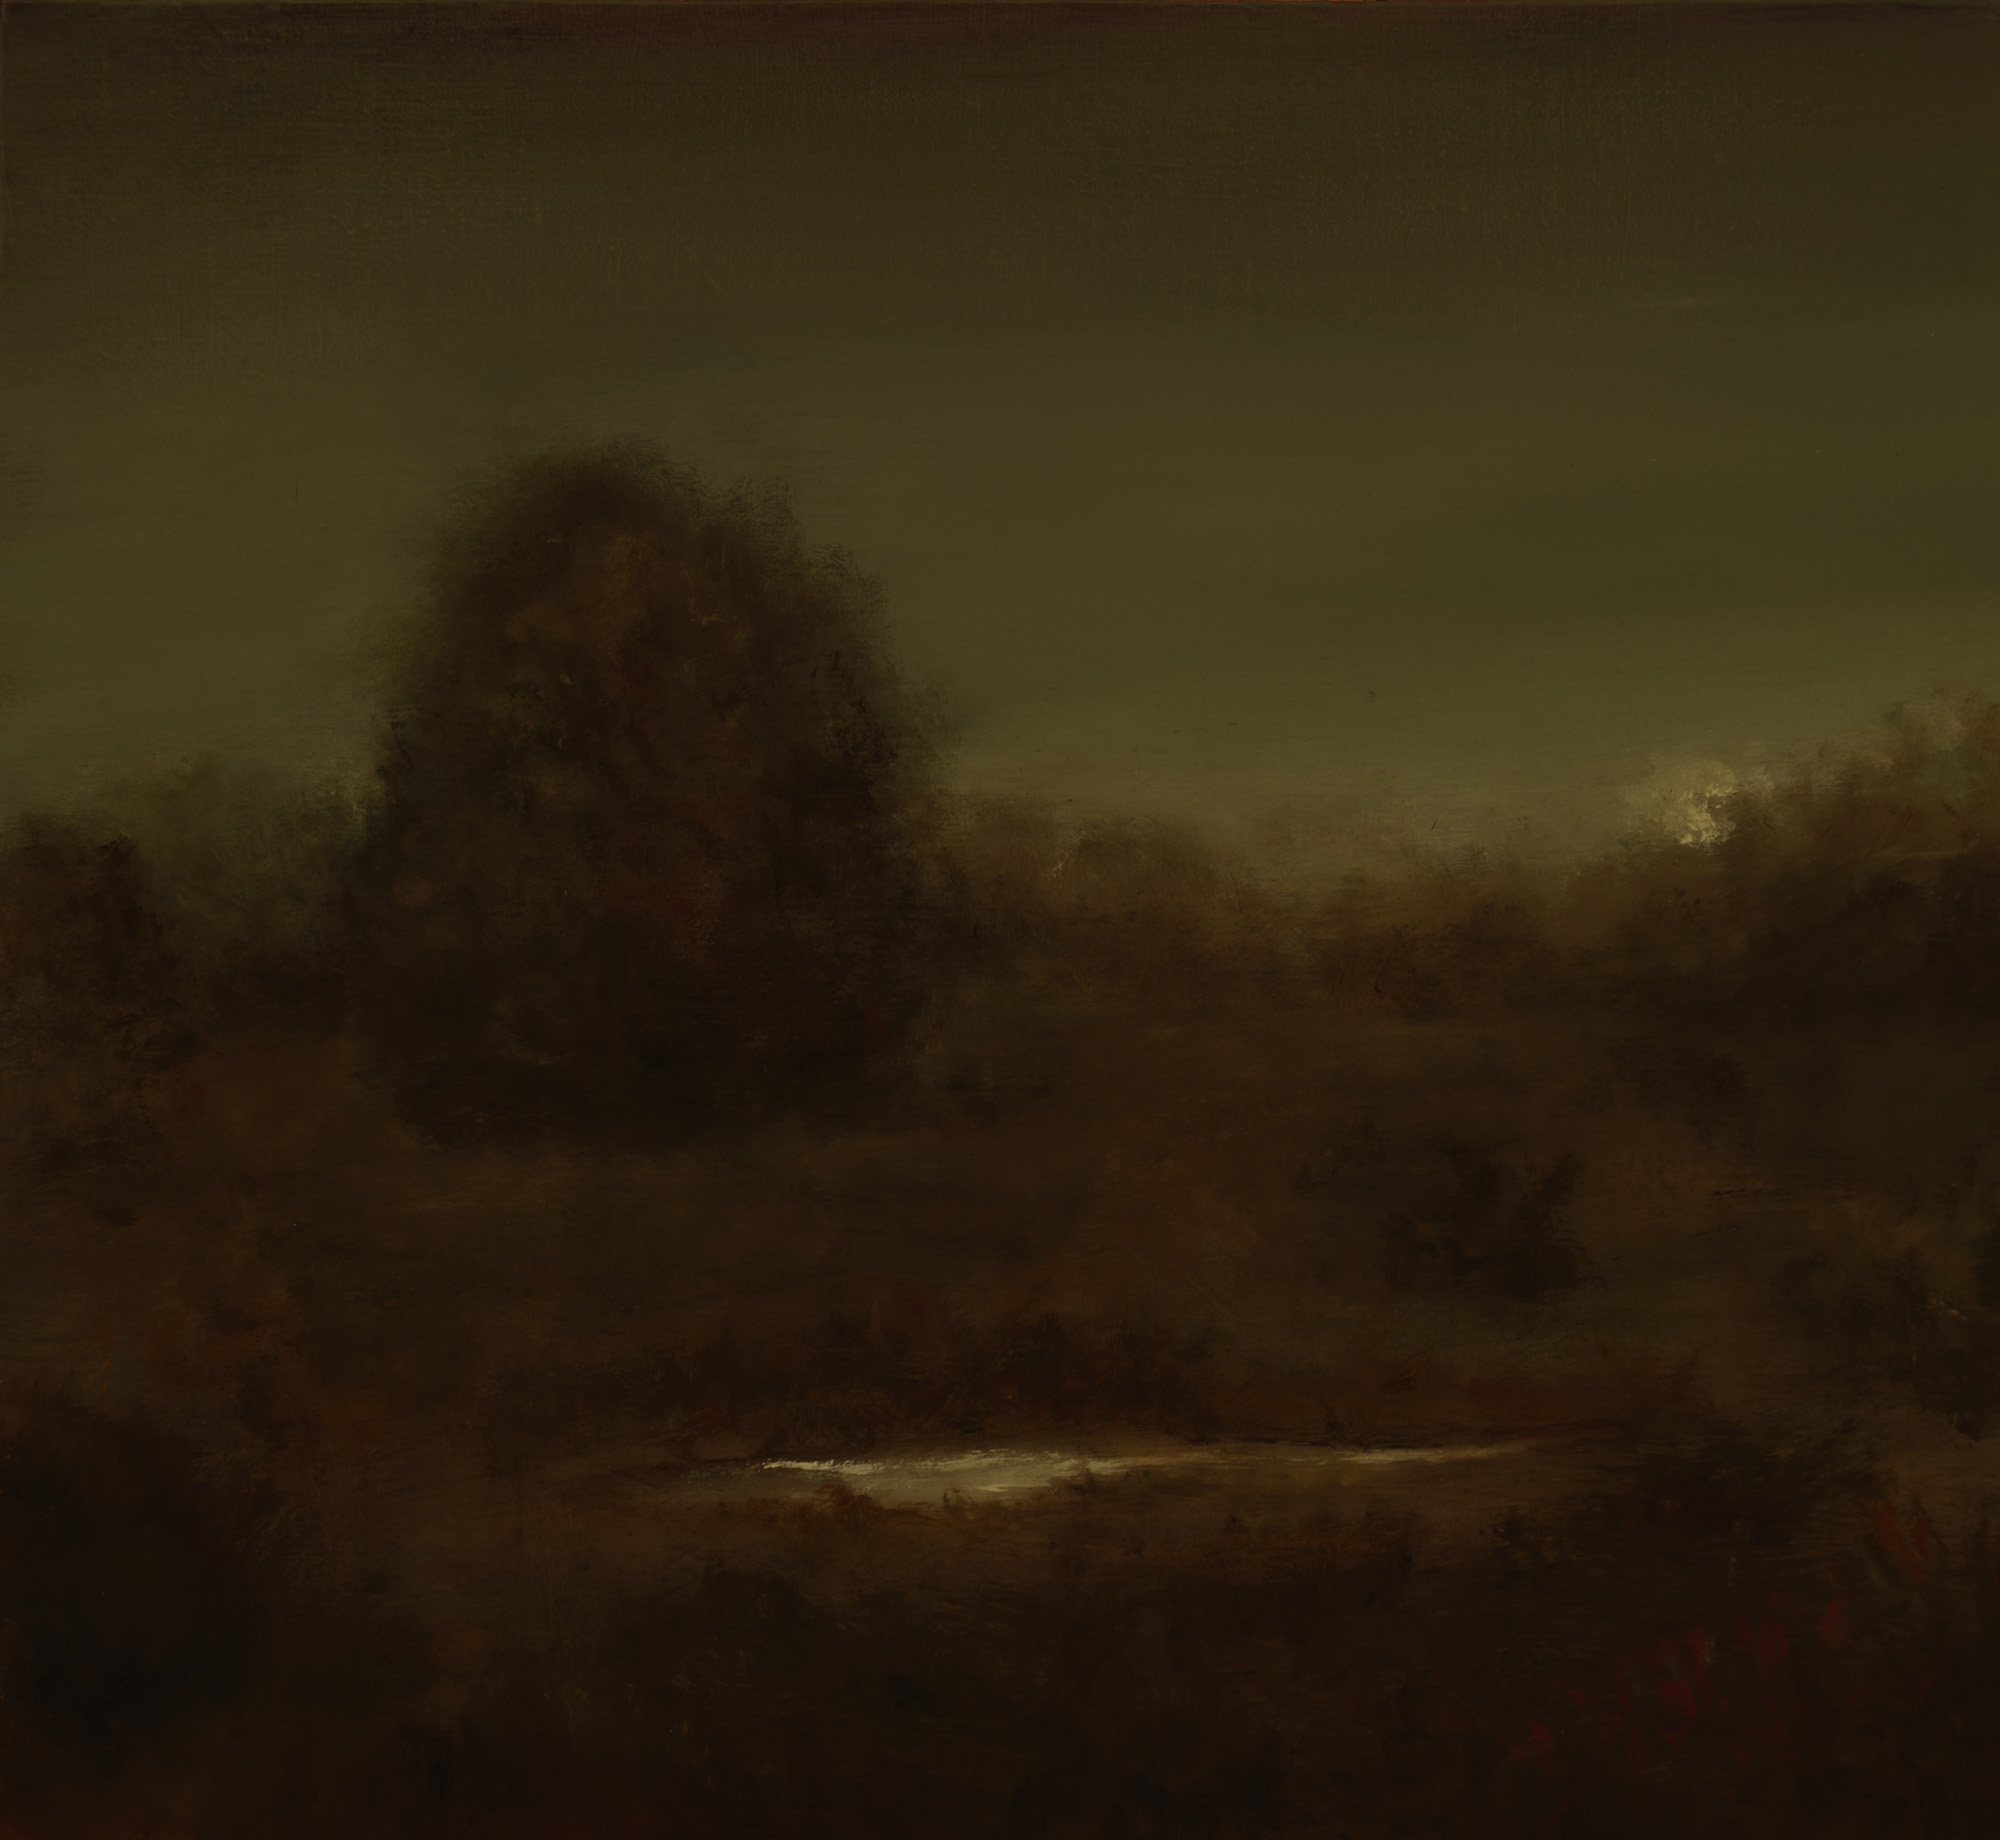 American Tonalism / Moonrise Through Trees / Chris Peters